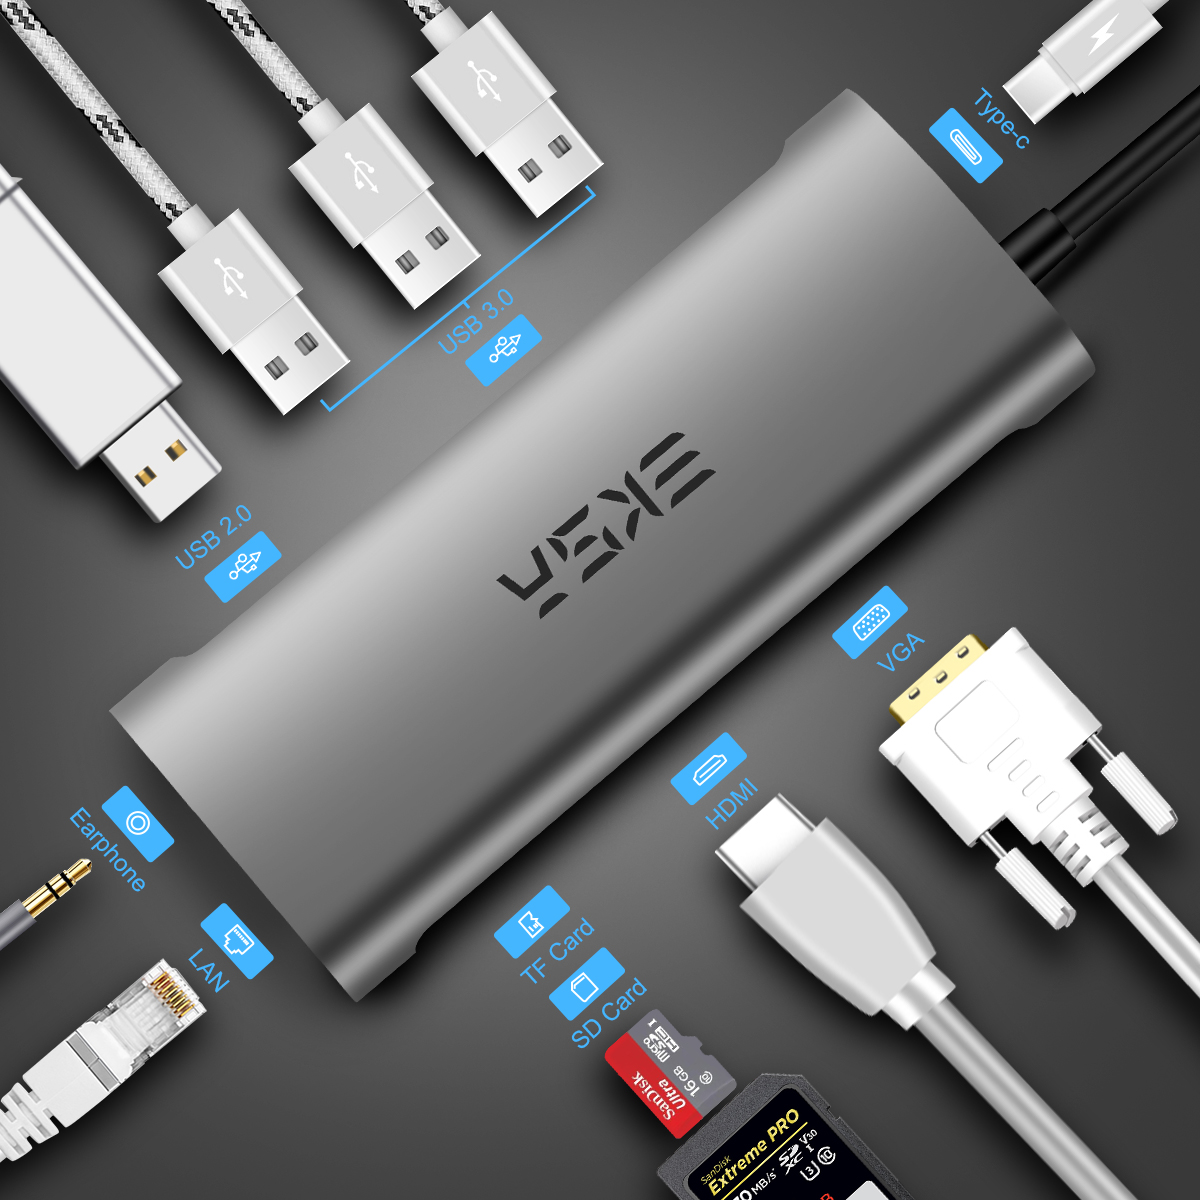 EKSA <font><b>USB</b></font> <font><b>HUB</b></font> C <font><b>HUB</b></font> to <font><b>USB</b></font> <font><b>3.0</b></font> 2.0 <font><b>RJ45</b></font> <font><b>VGA</b></font> <font><b>HDMI</b></font> Adapter Dock for MacBook Pro Huawei Samsung <font><b>USB</b></font>-C Type C <font><b>3.0</b></font> Splitter <font><b>USB</b></font> C <font><b>HUB</b></font> image